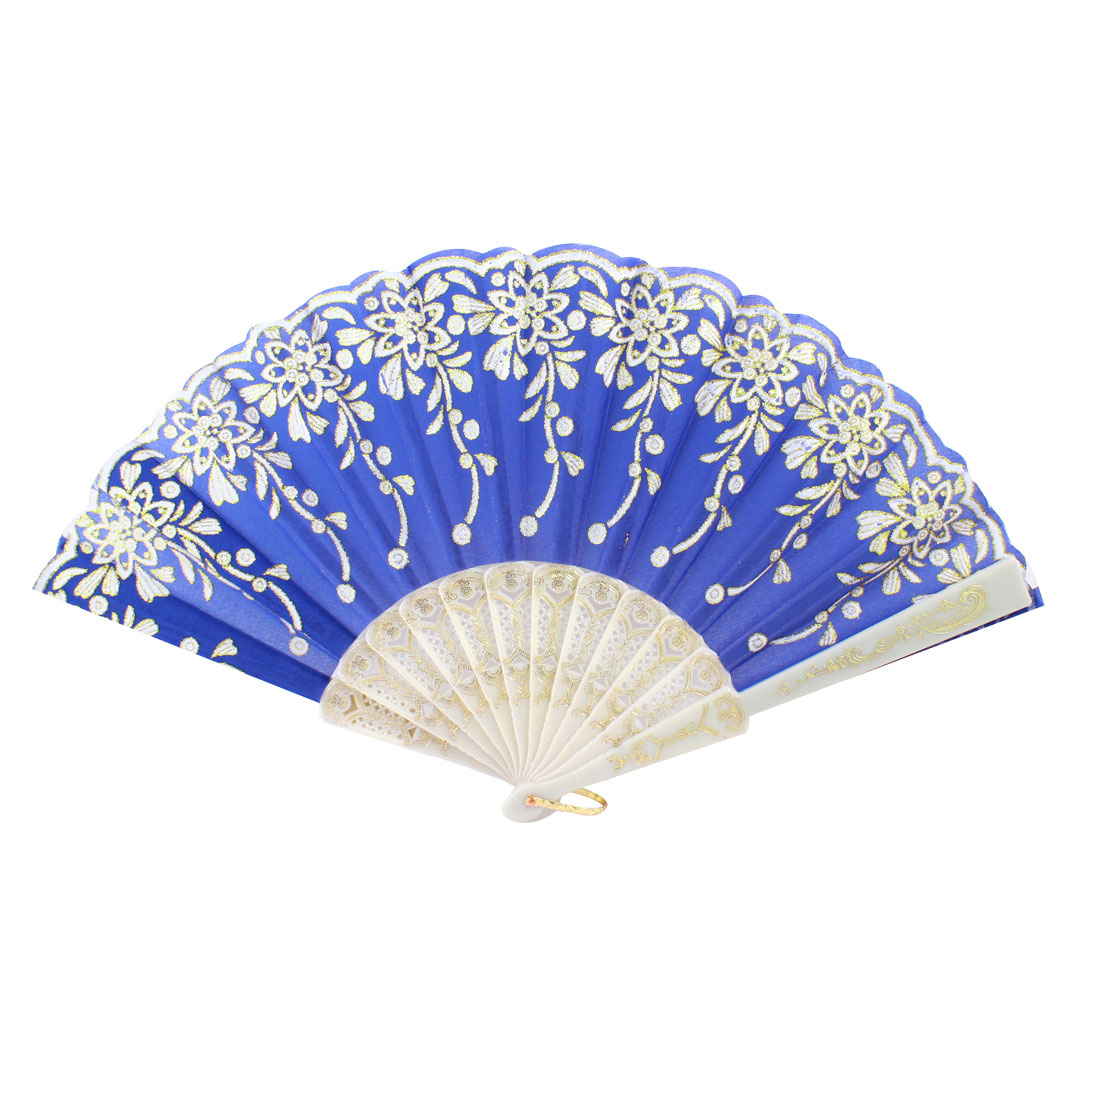 Plastic Rib Gold Tone Glittery Powder Decor Floral Pattern Folding Hand Fan Blue White